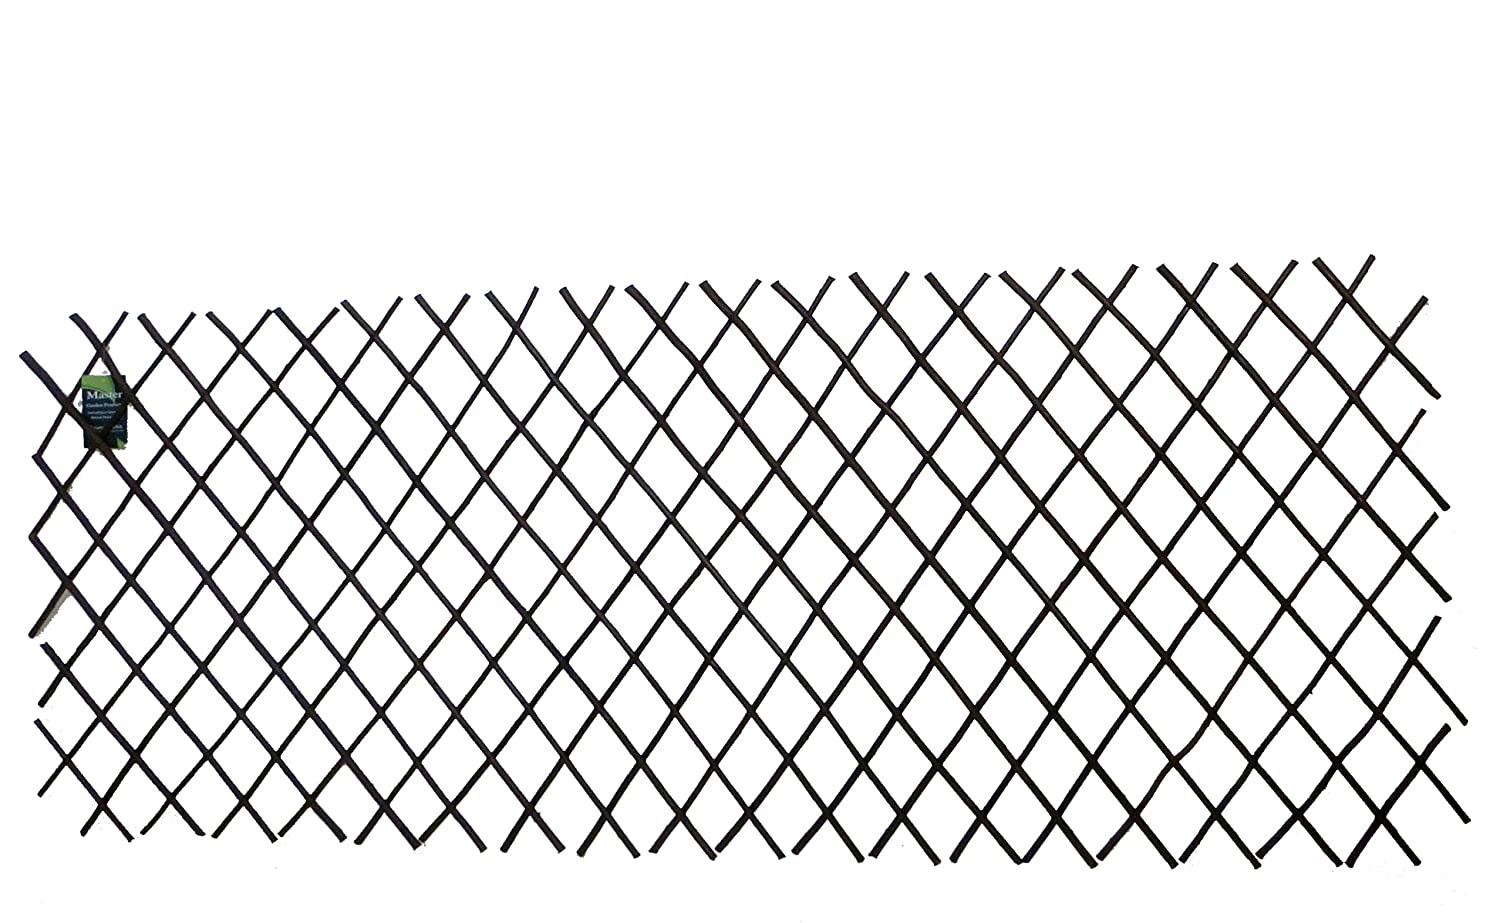 Amazon.com : Master Garden Products Willow Expandable Trellis Fence ...